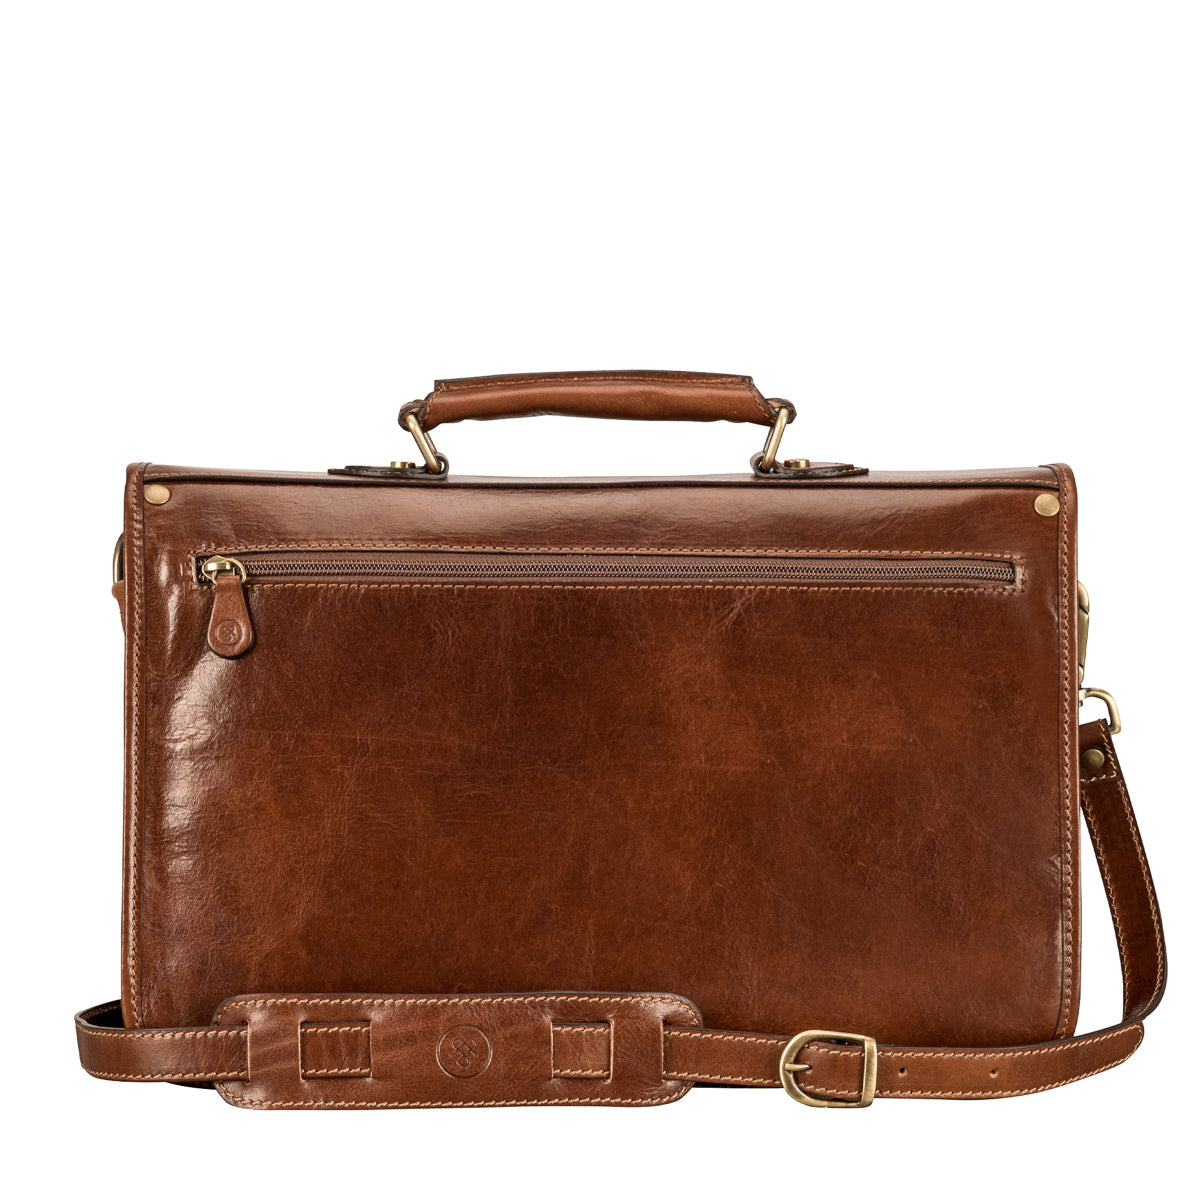 Image 4 of the 'Jesolo Due' Chestnut Veg-Tanned Leather Satchel